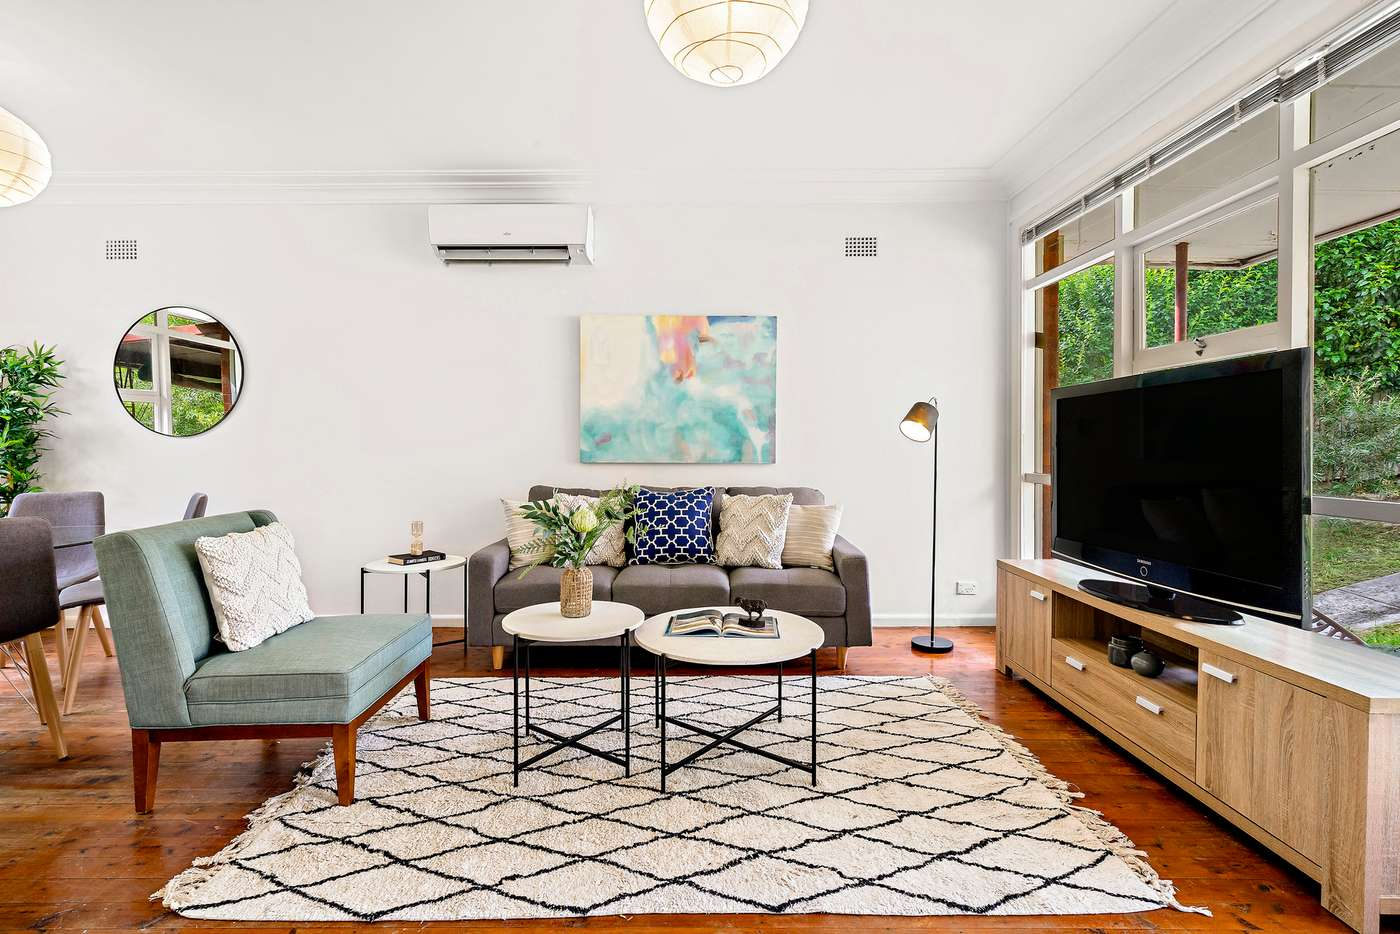 Main view of Homely house listing, 49 Dandarbong Avenue, Carlingford NSW 2118